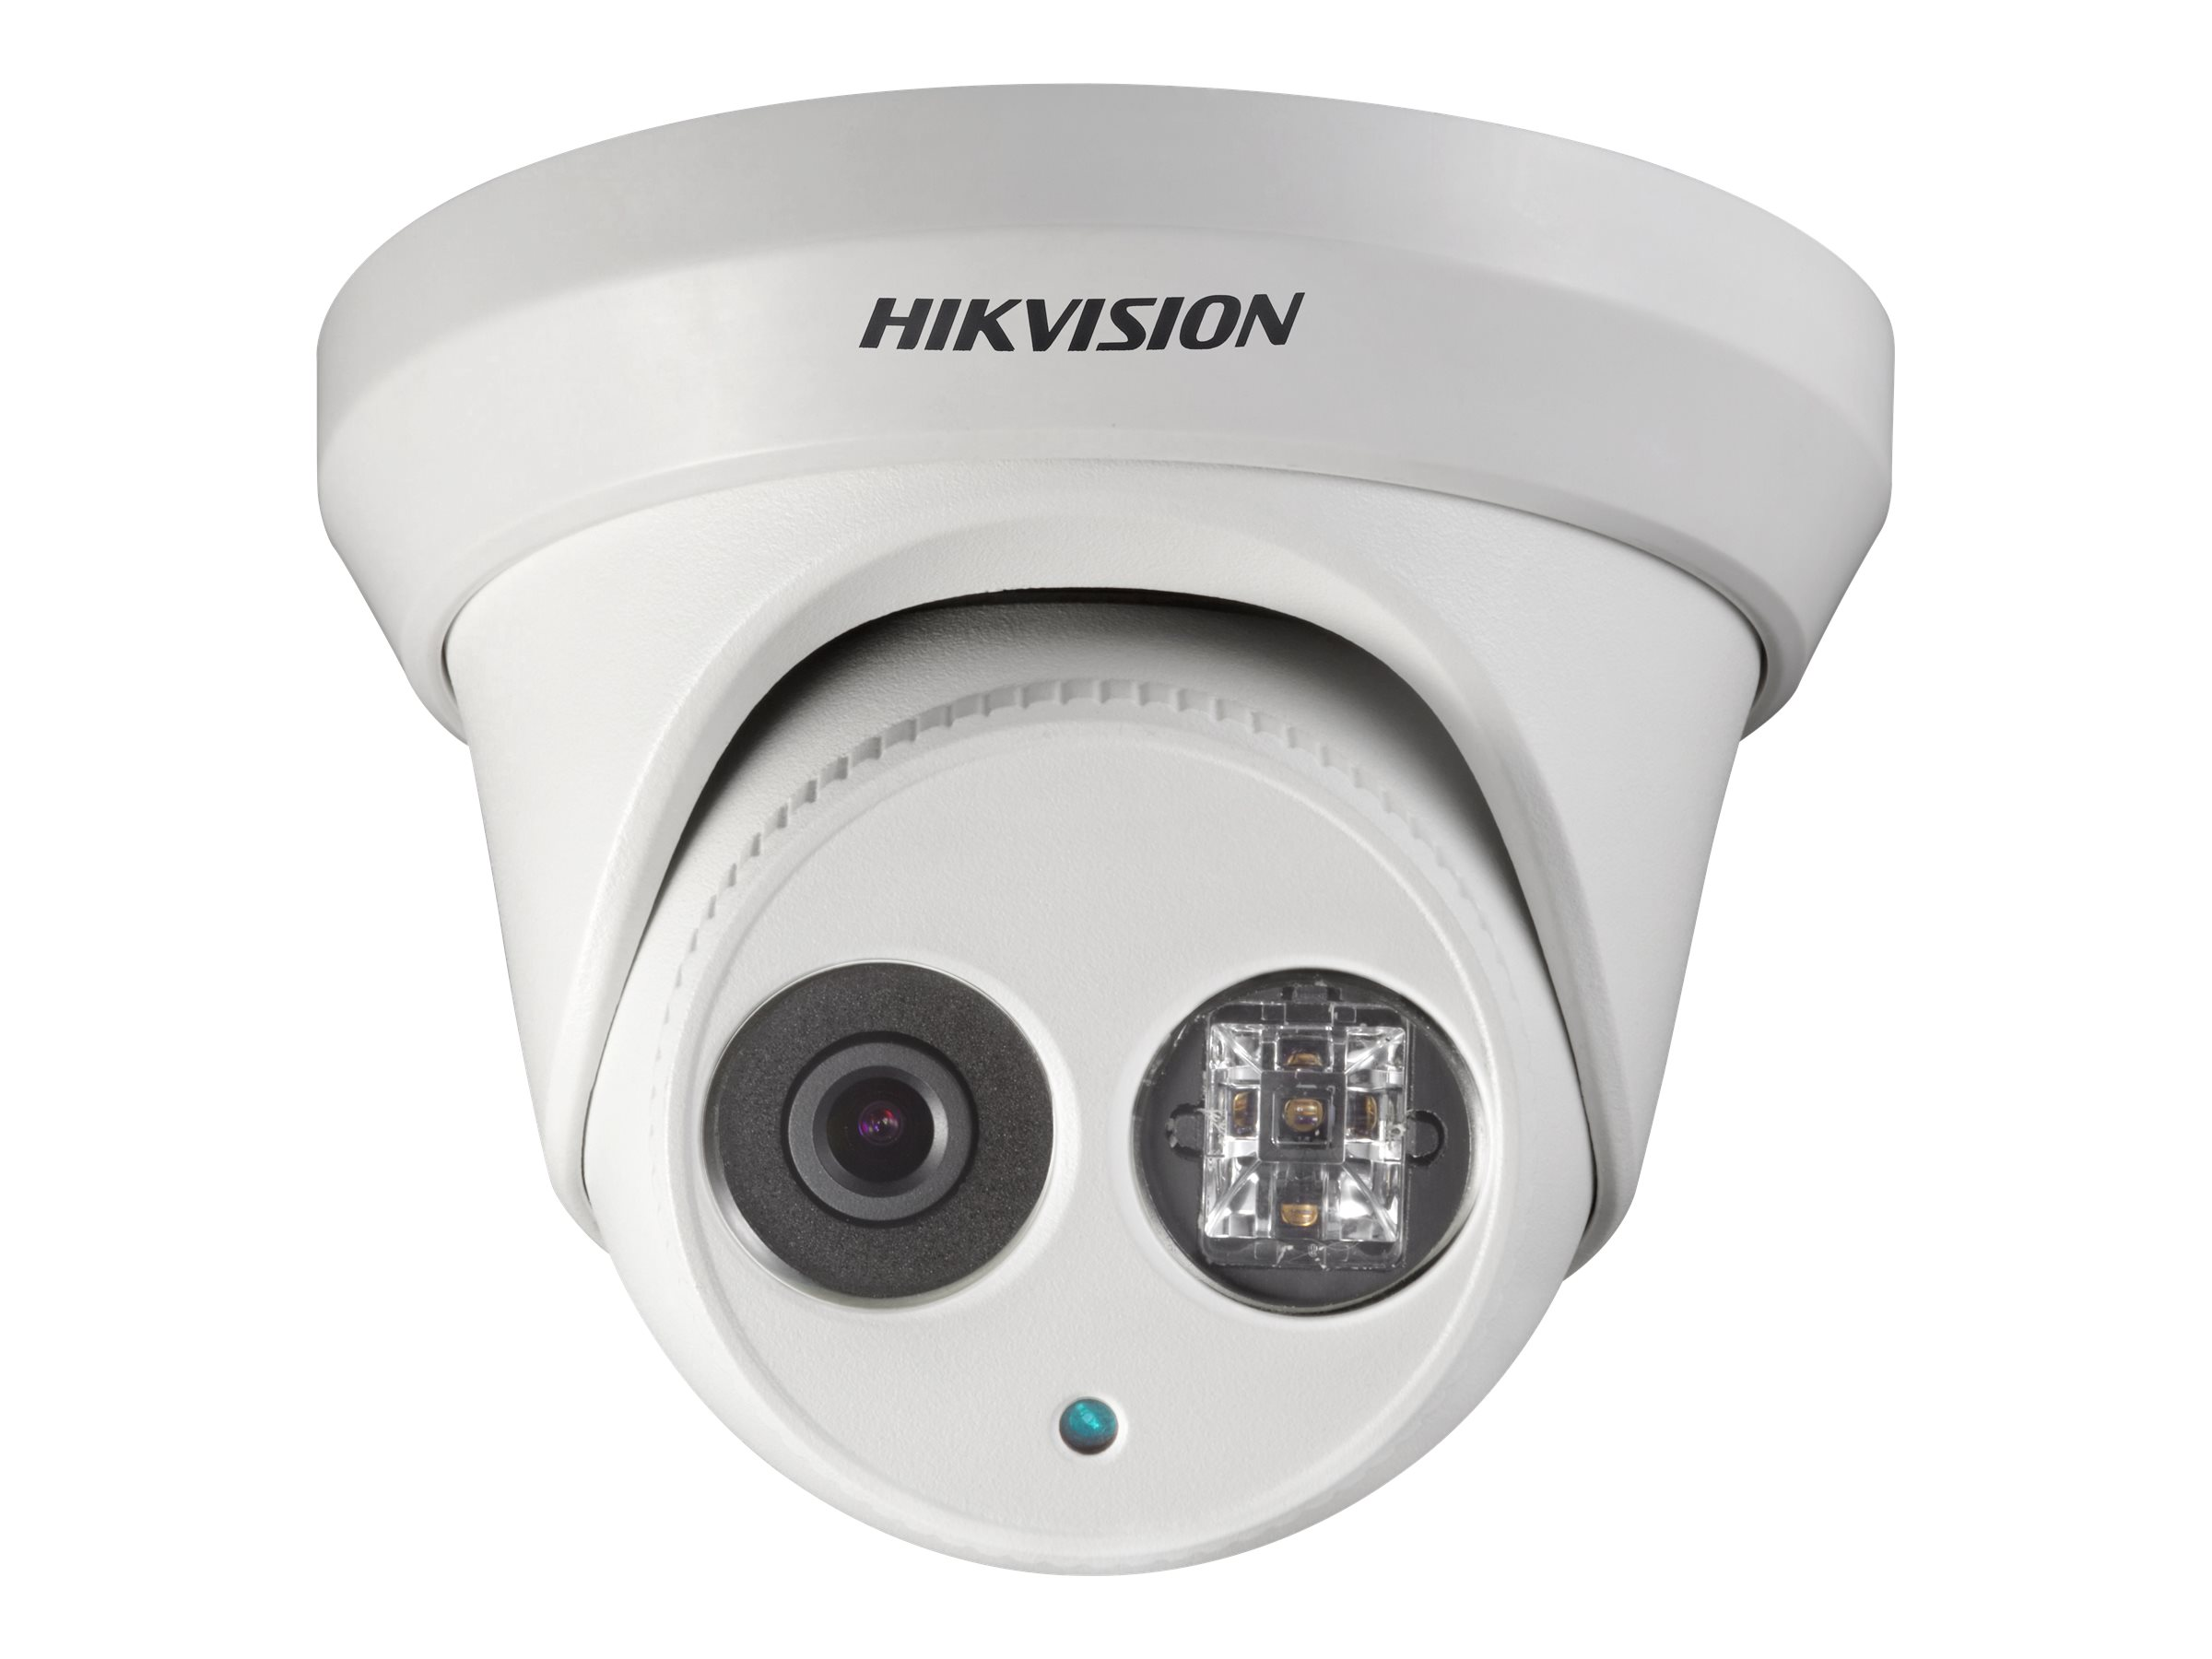 Hikvision DS-2CD2312-I - network surveillance camera